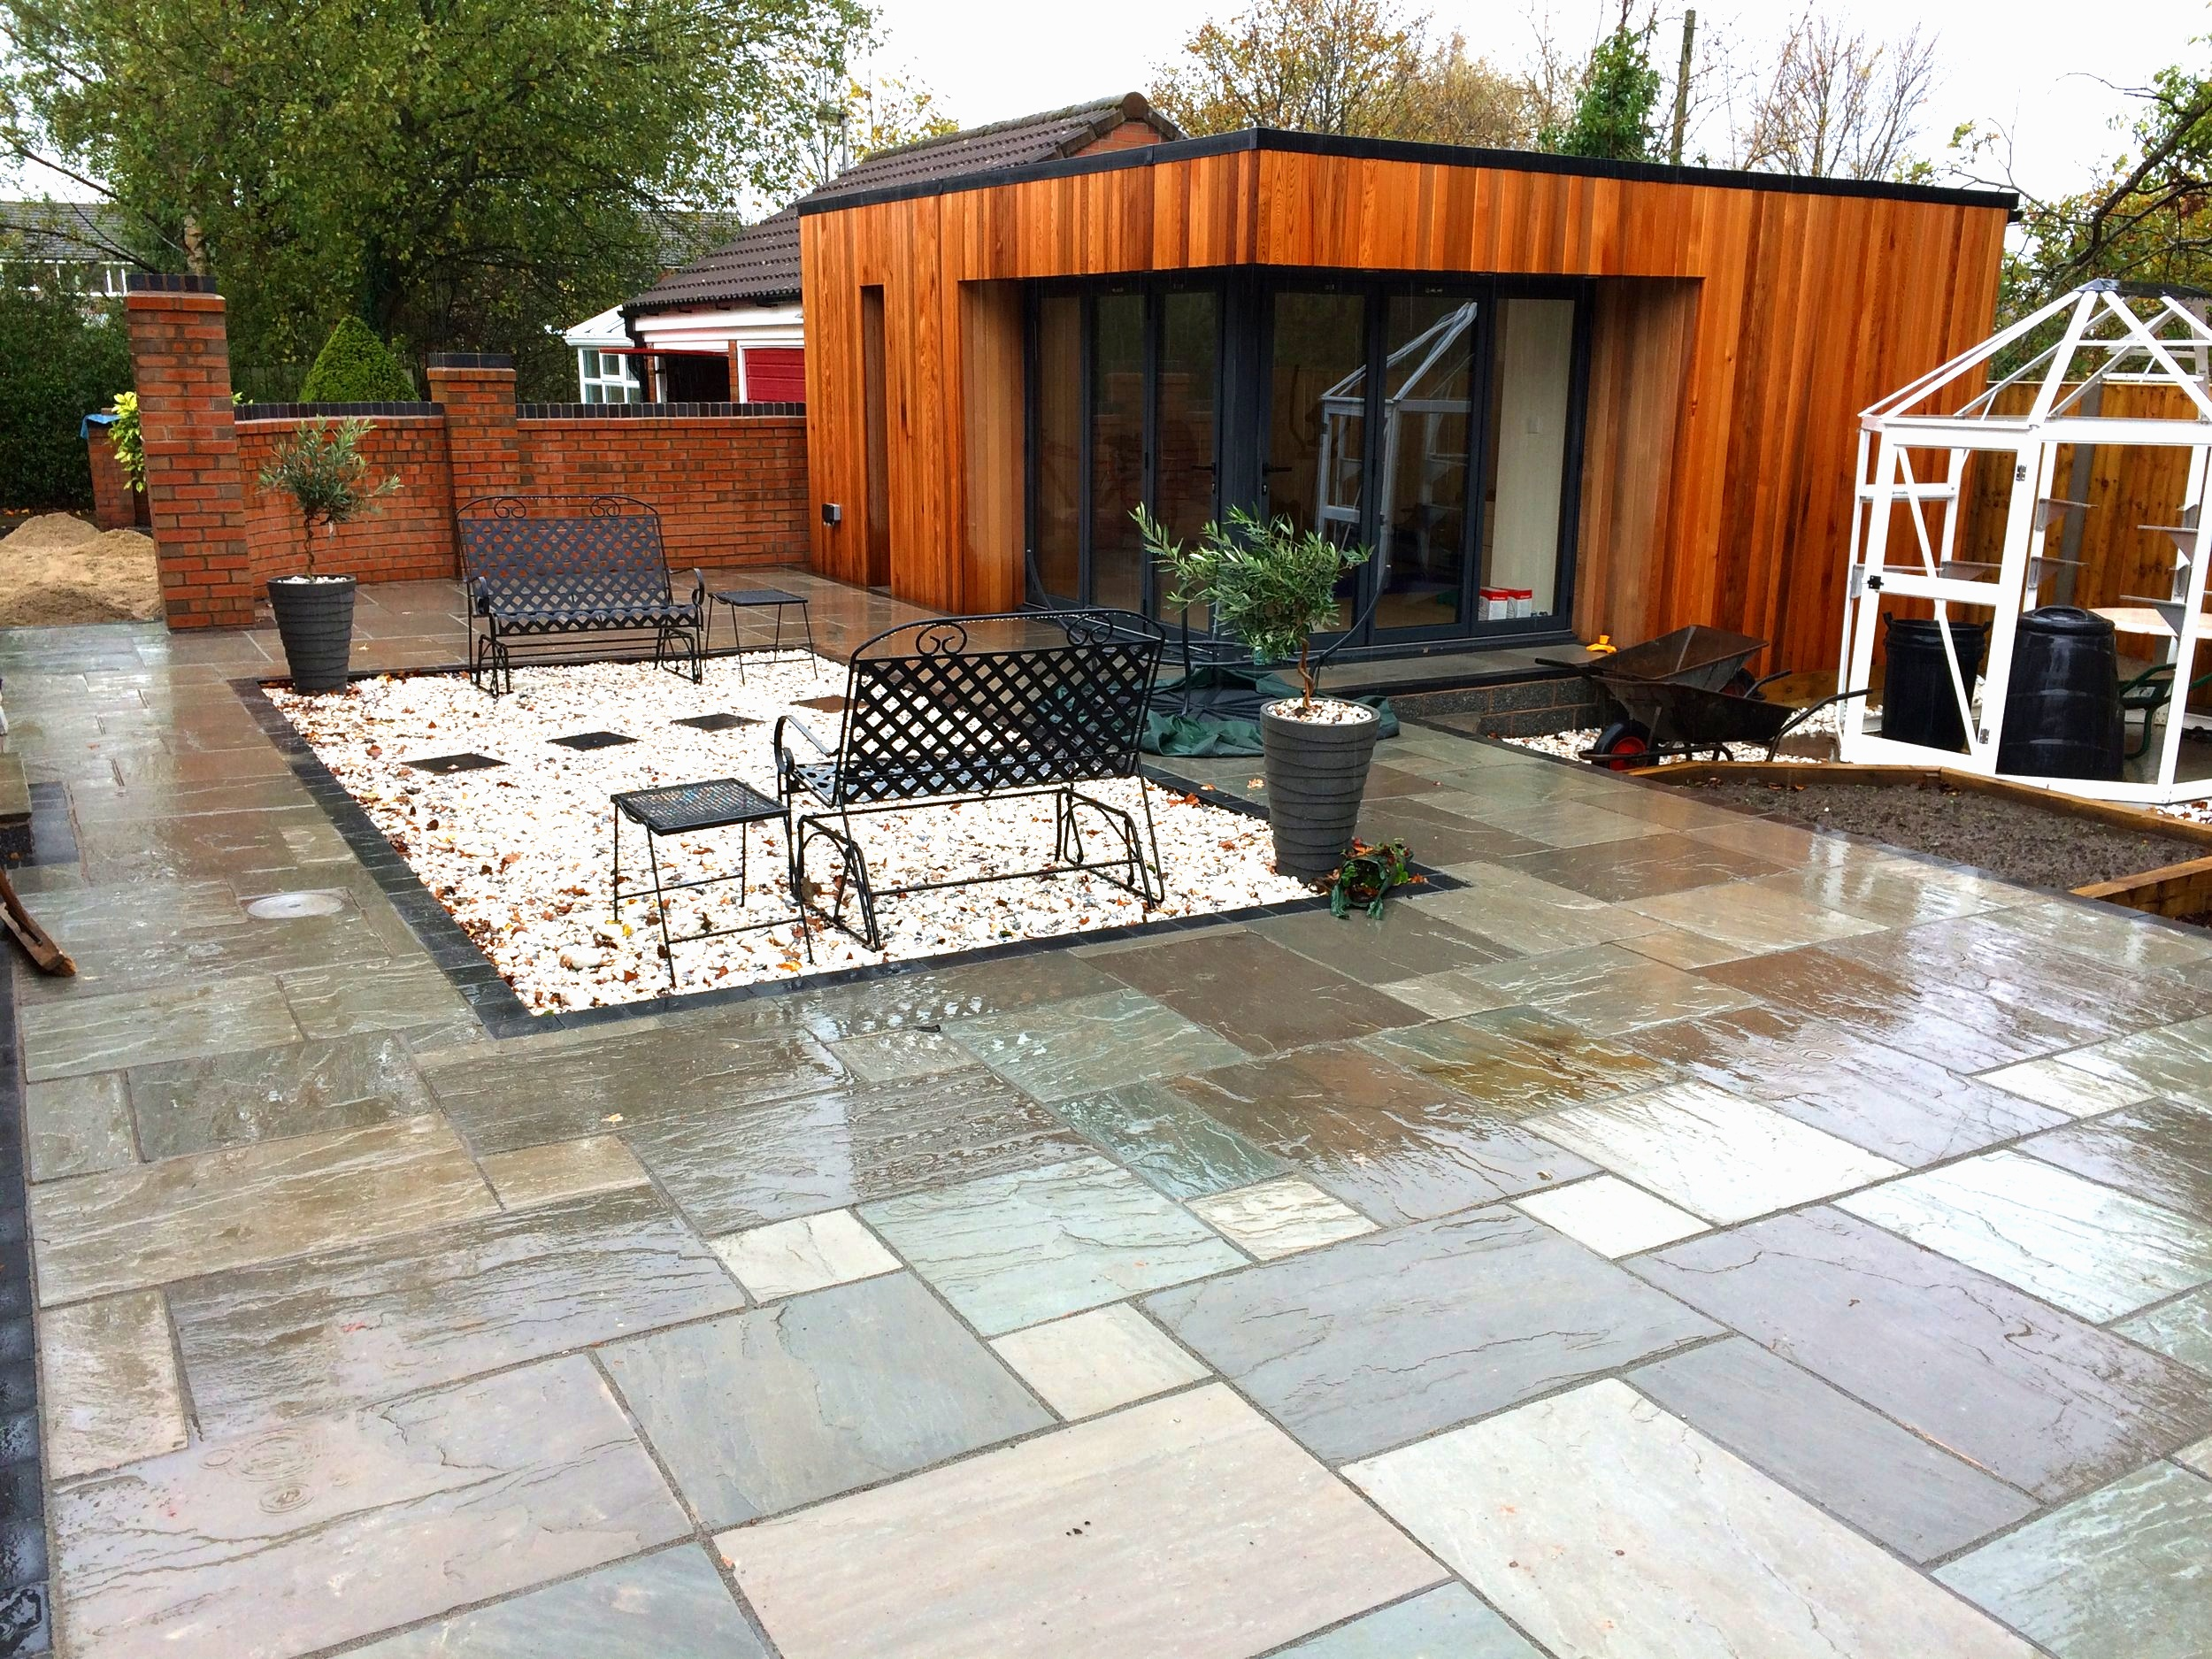 Patios - We understand the perfect home needs the perfect outdoor space. Creating beautiful designs with materials such as Indian stone, we can make any outdoor area a uniquely attractive space.